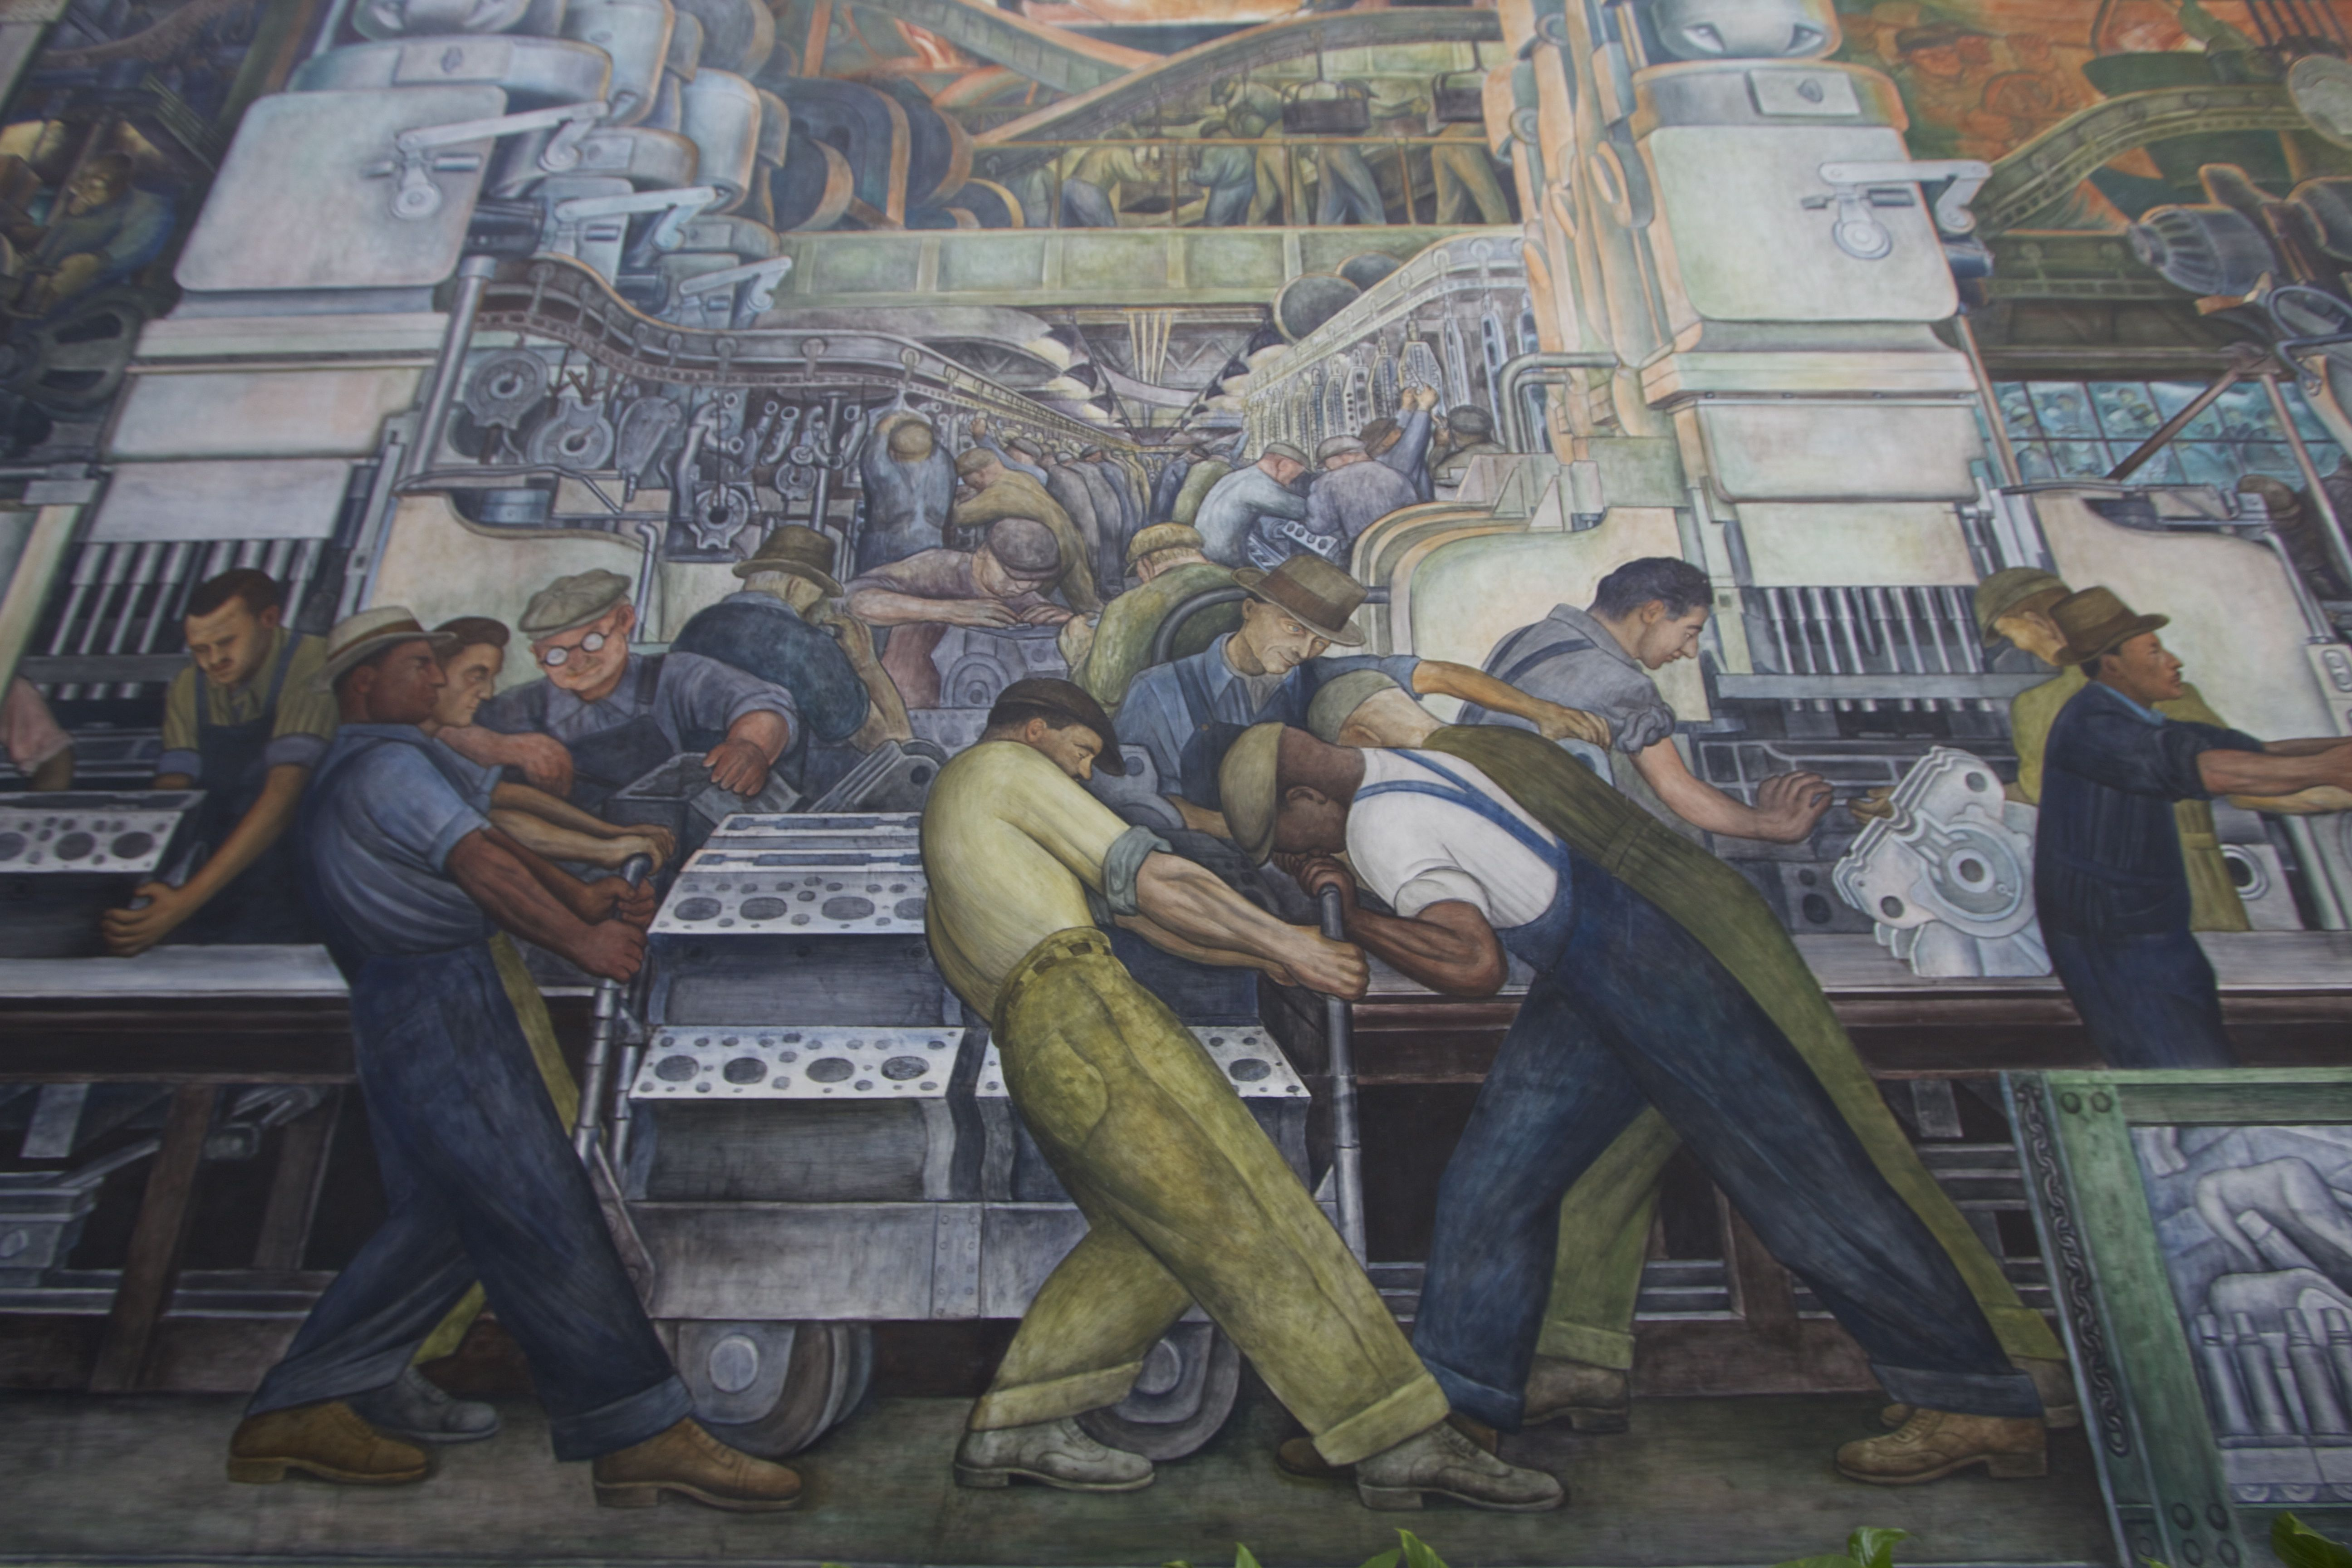 Redefining detroit travelers roundtable for Diego rivera mural dia